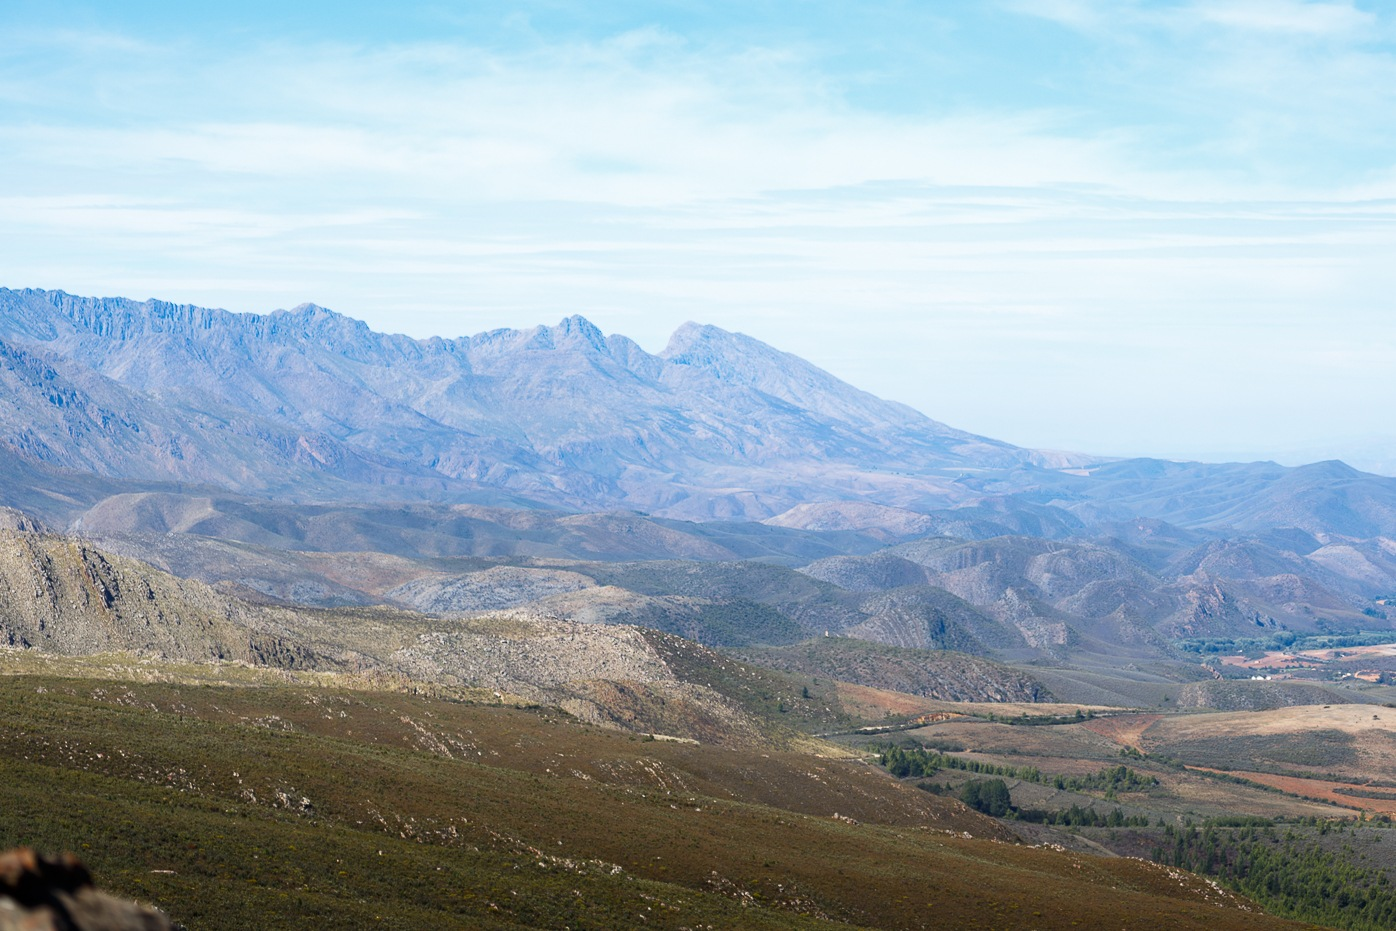 The view of the mountains upon mountains by Charissa de Scande Lotter